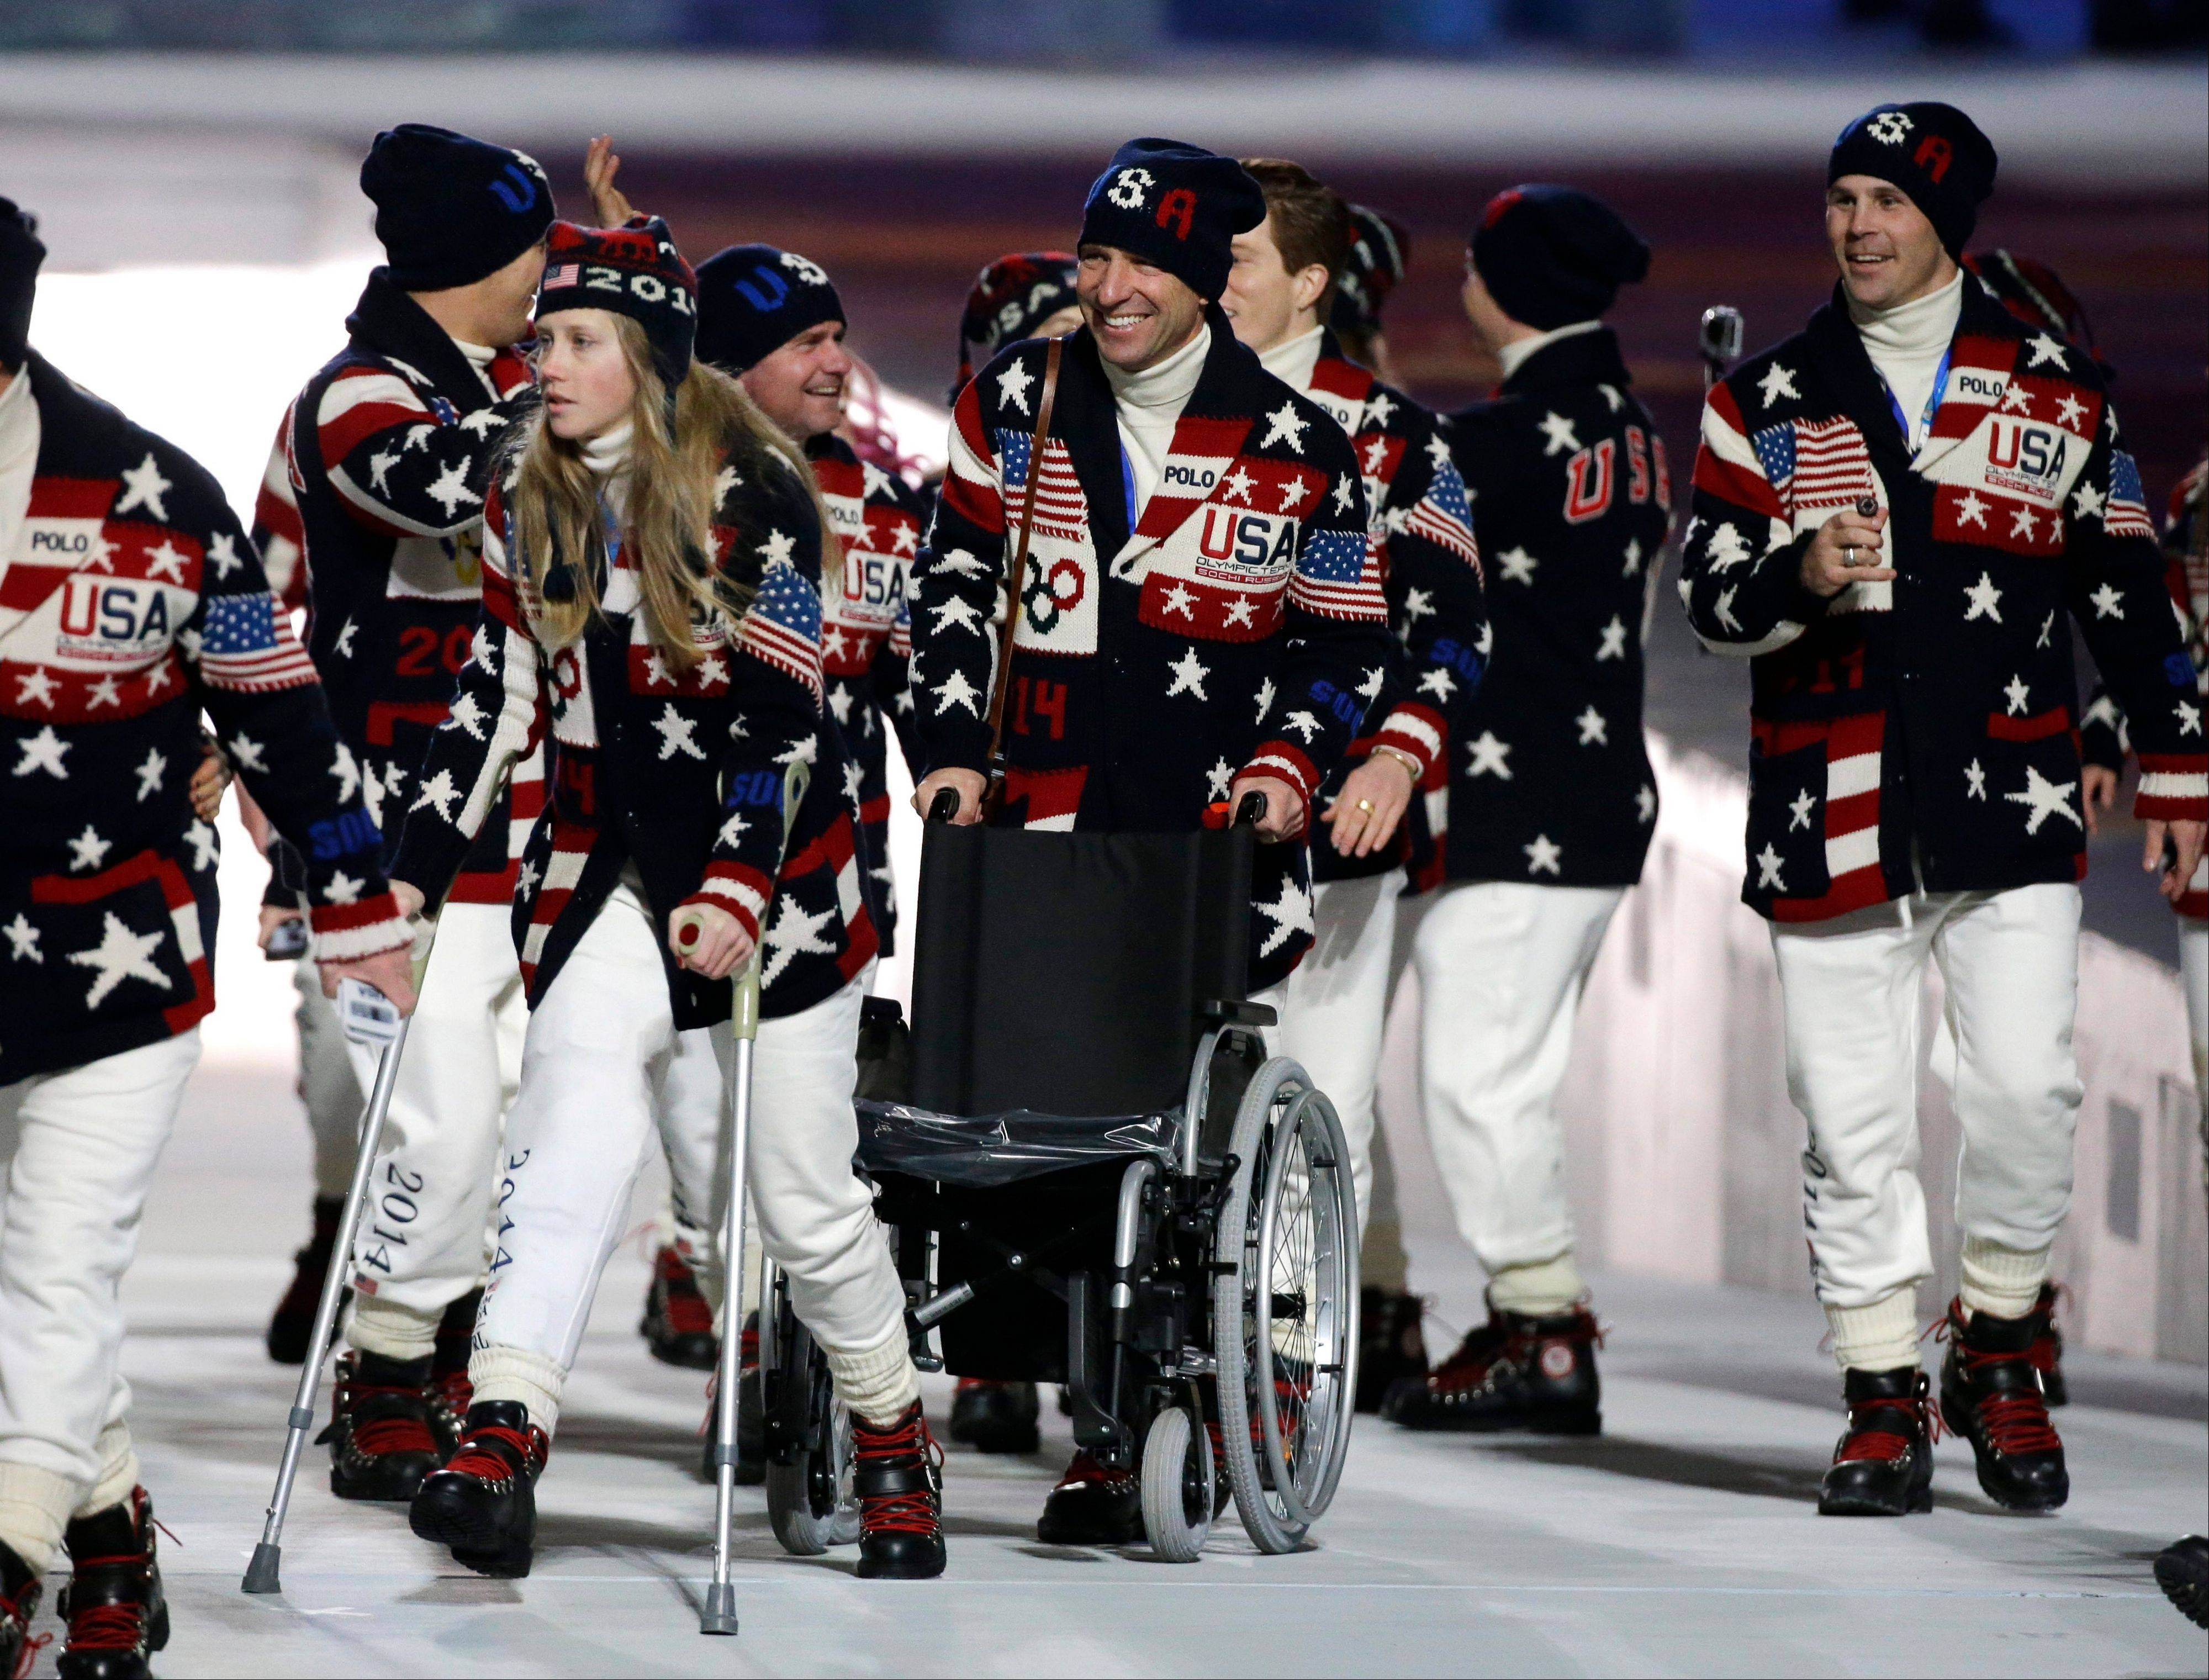 Freeskier Heidi Kloser of the United States, left, walks on crutches after she injured her right leg during a training run before moguls qualifying as she arrives for the opening ceremony.